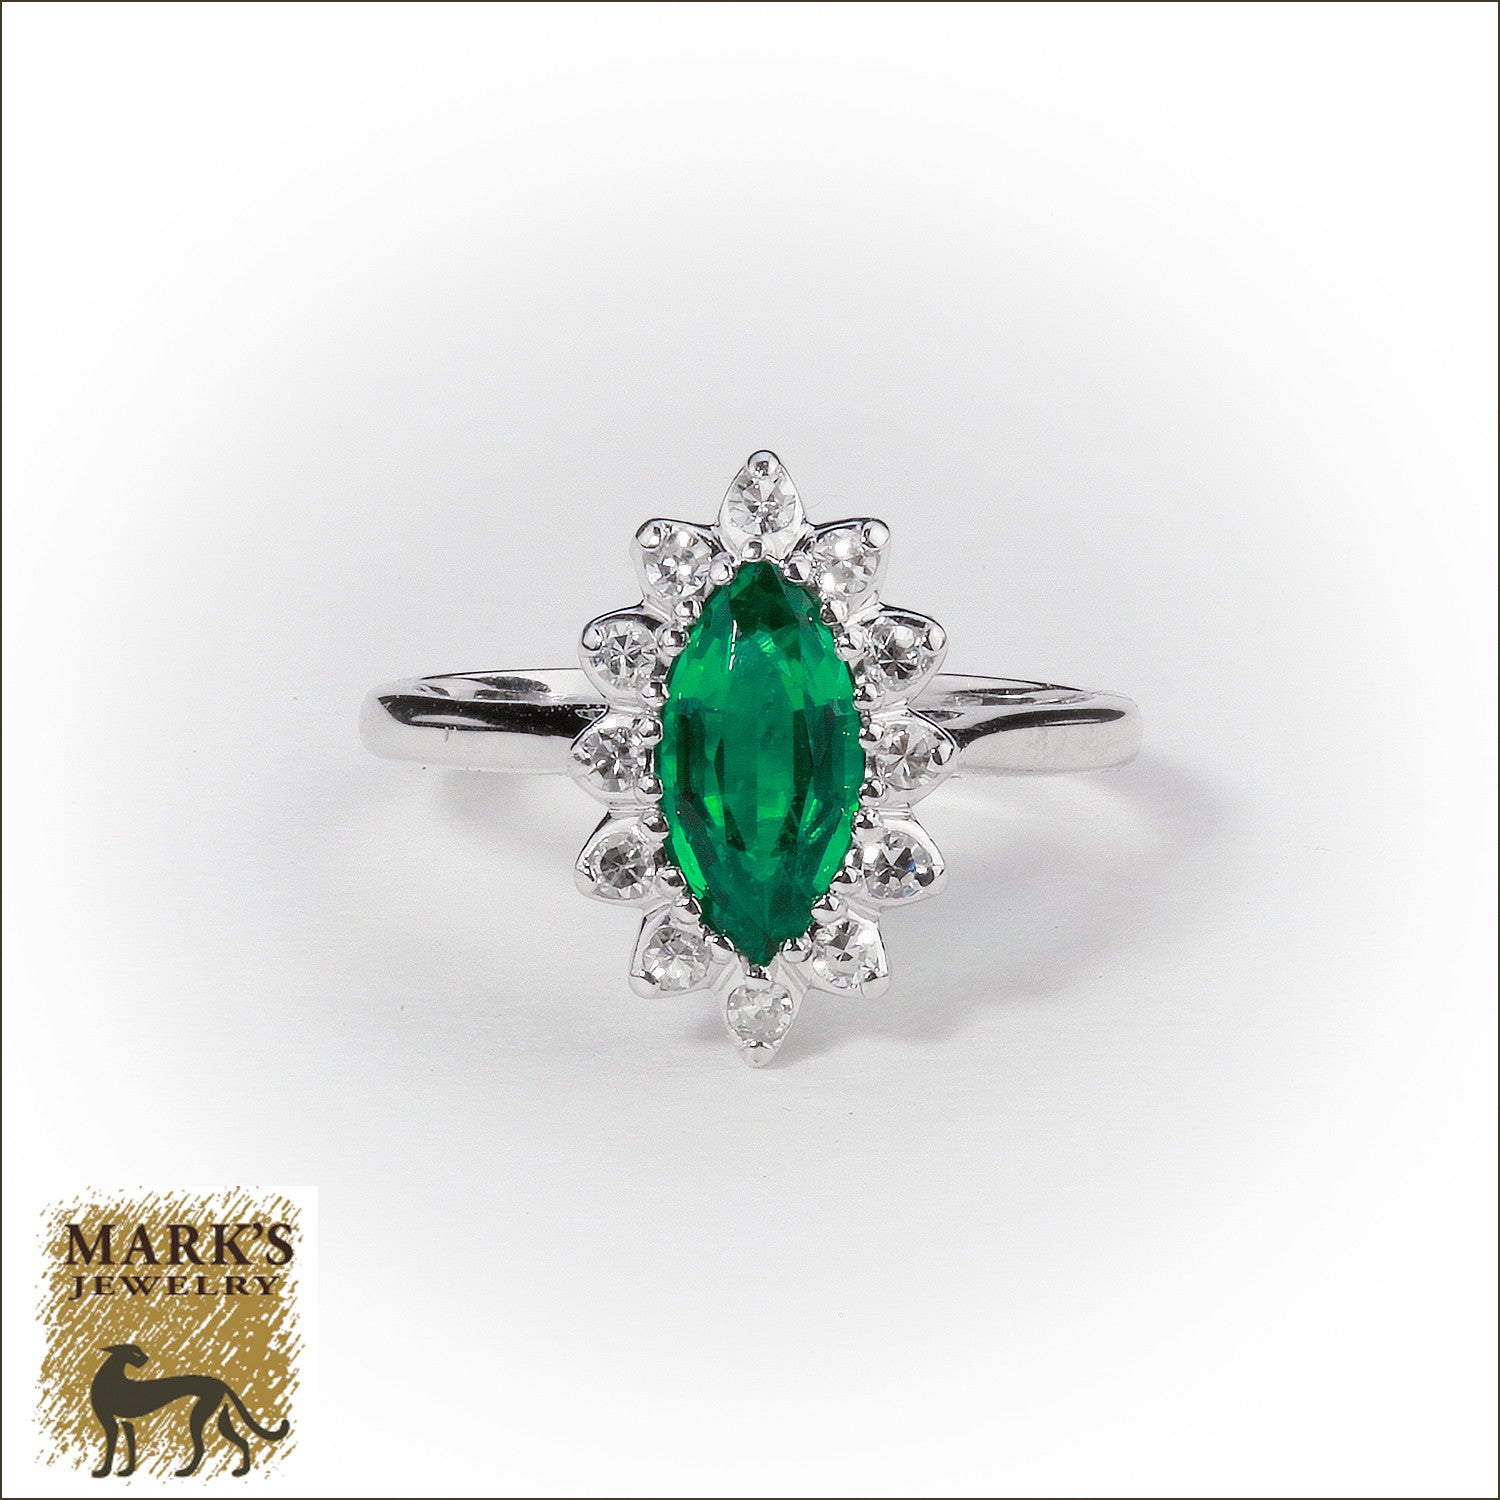 Estate 14K Yellow Gold Synthetic Marquise Emerald & Diamond Ring, Marks Jewelry